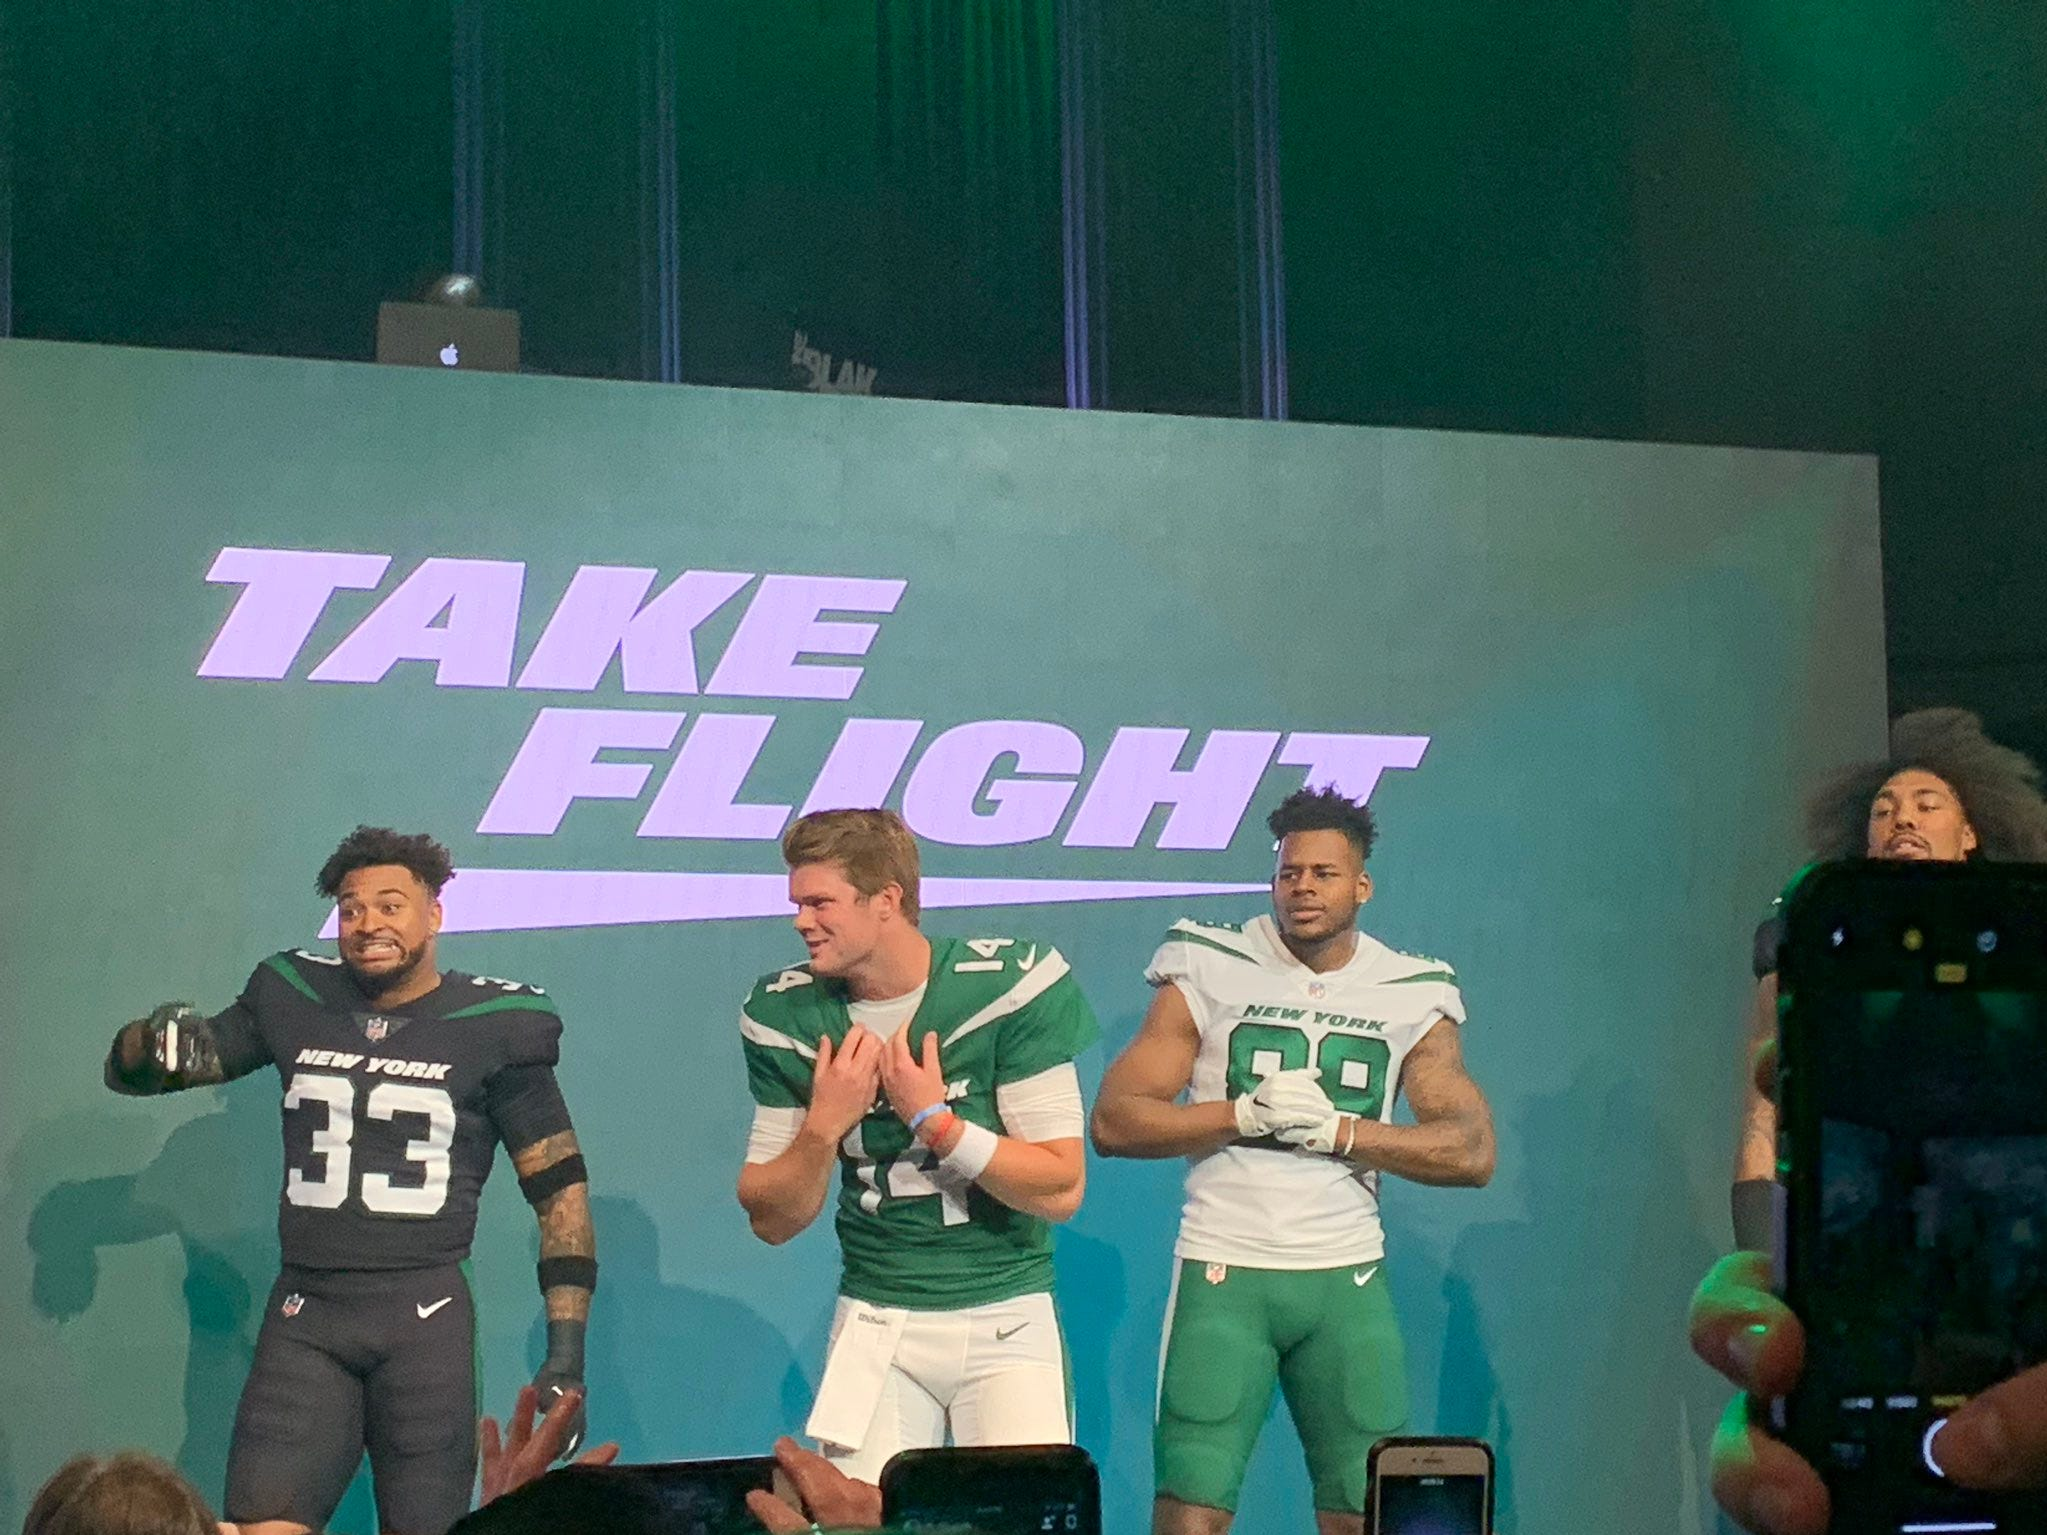 The New York Jets unveiled the team's new uniforms on Thursday, April 4, 2019.